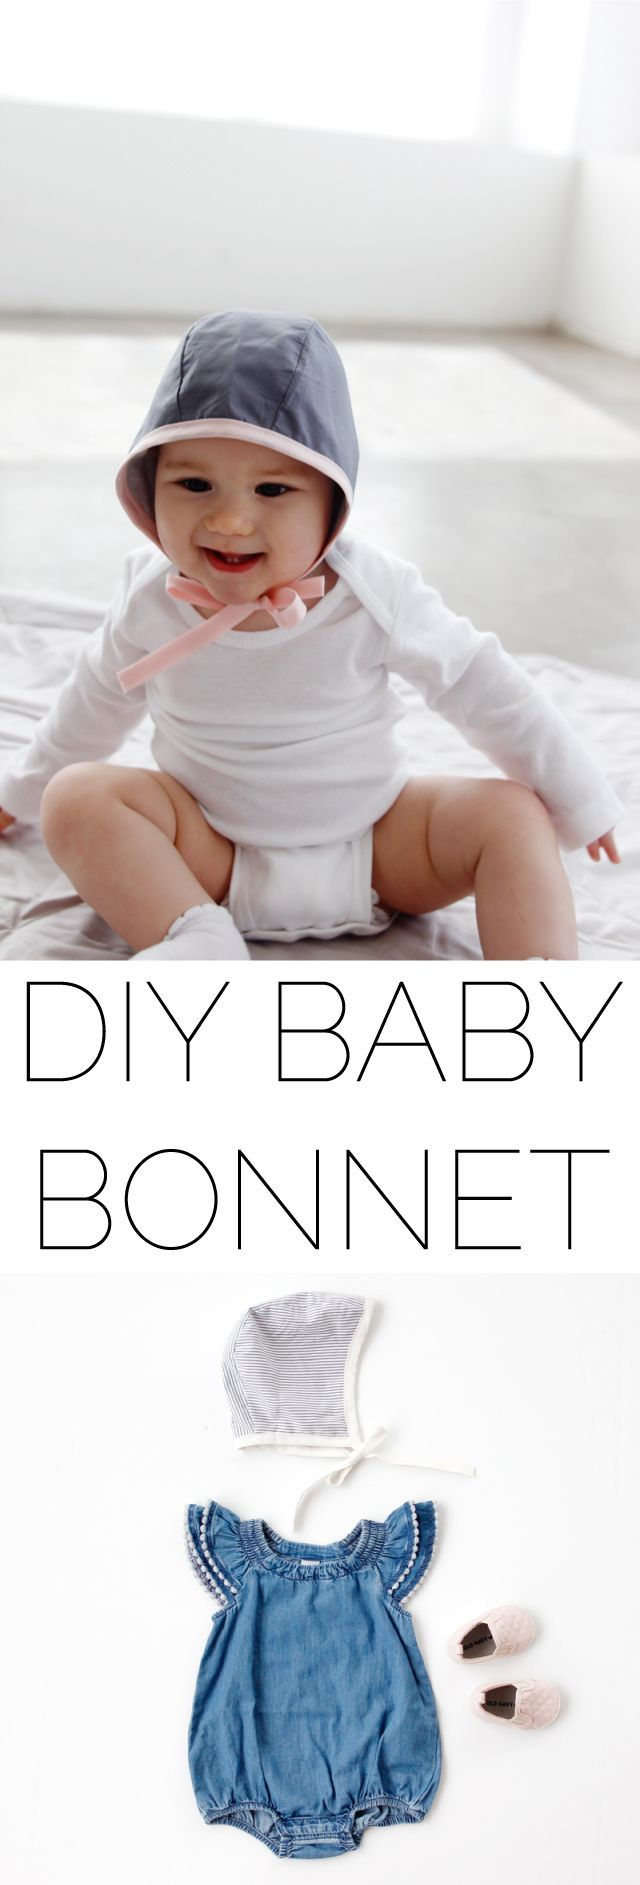 2 New Baby Bonnet Patterns | BABIES AND KIDS | Costura, Bebe y Nena